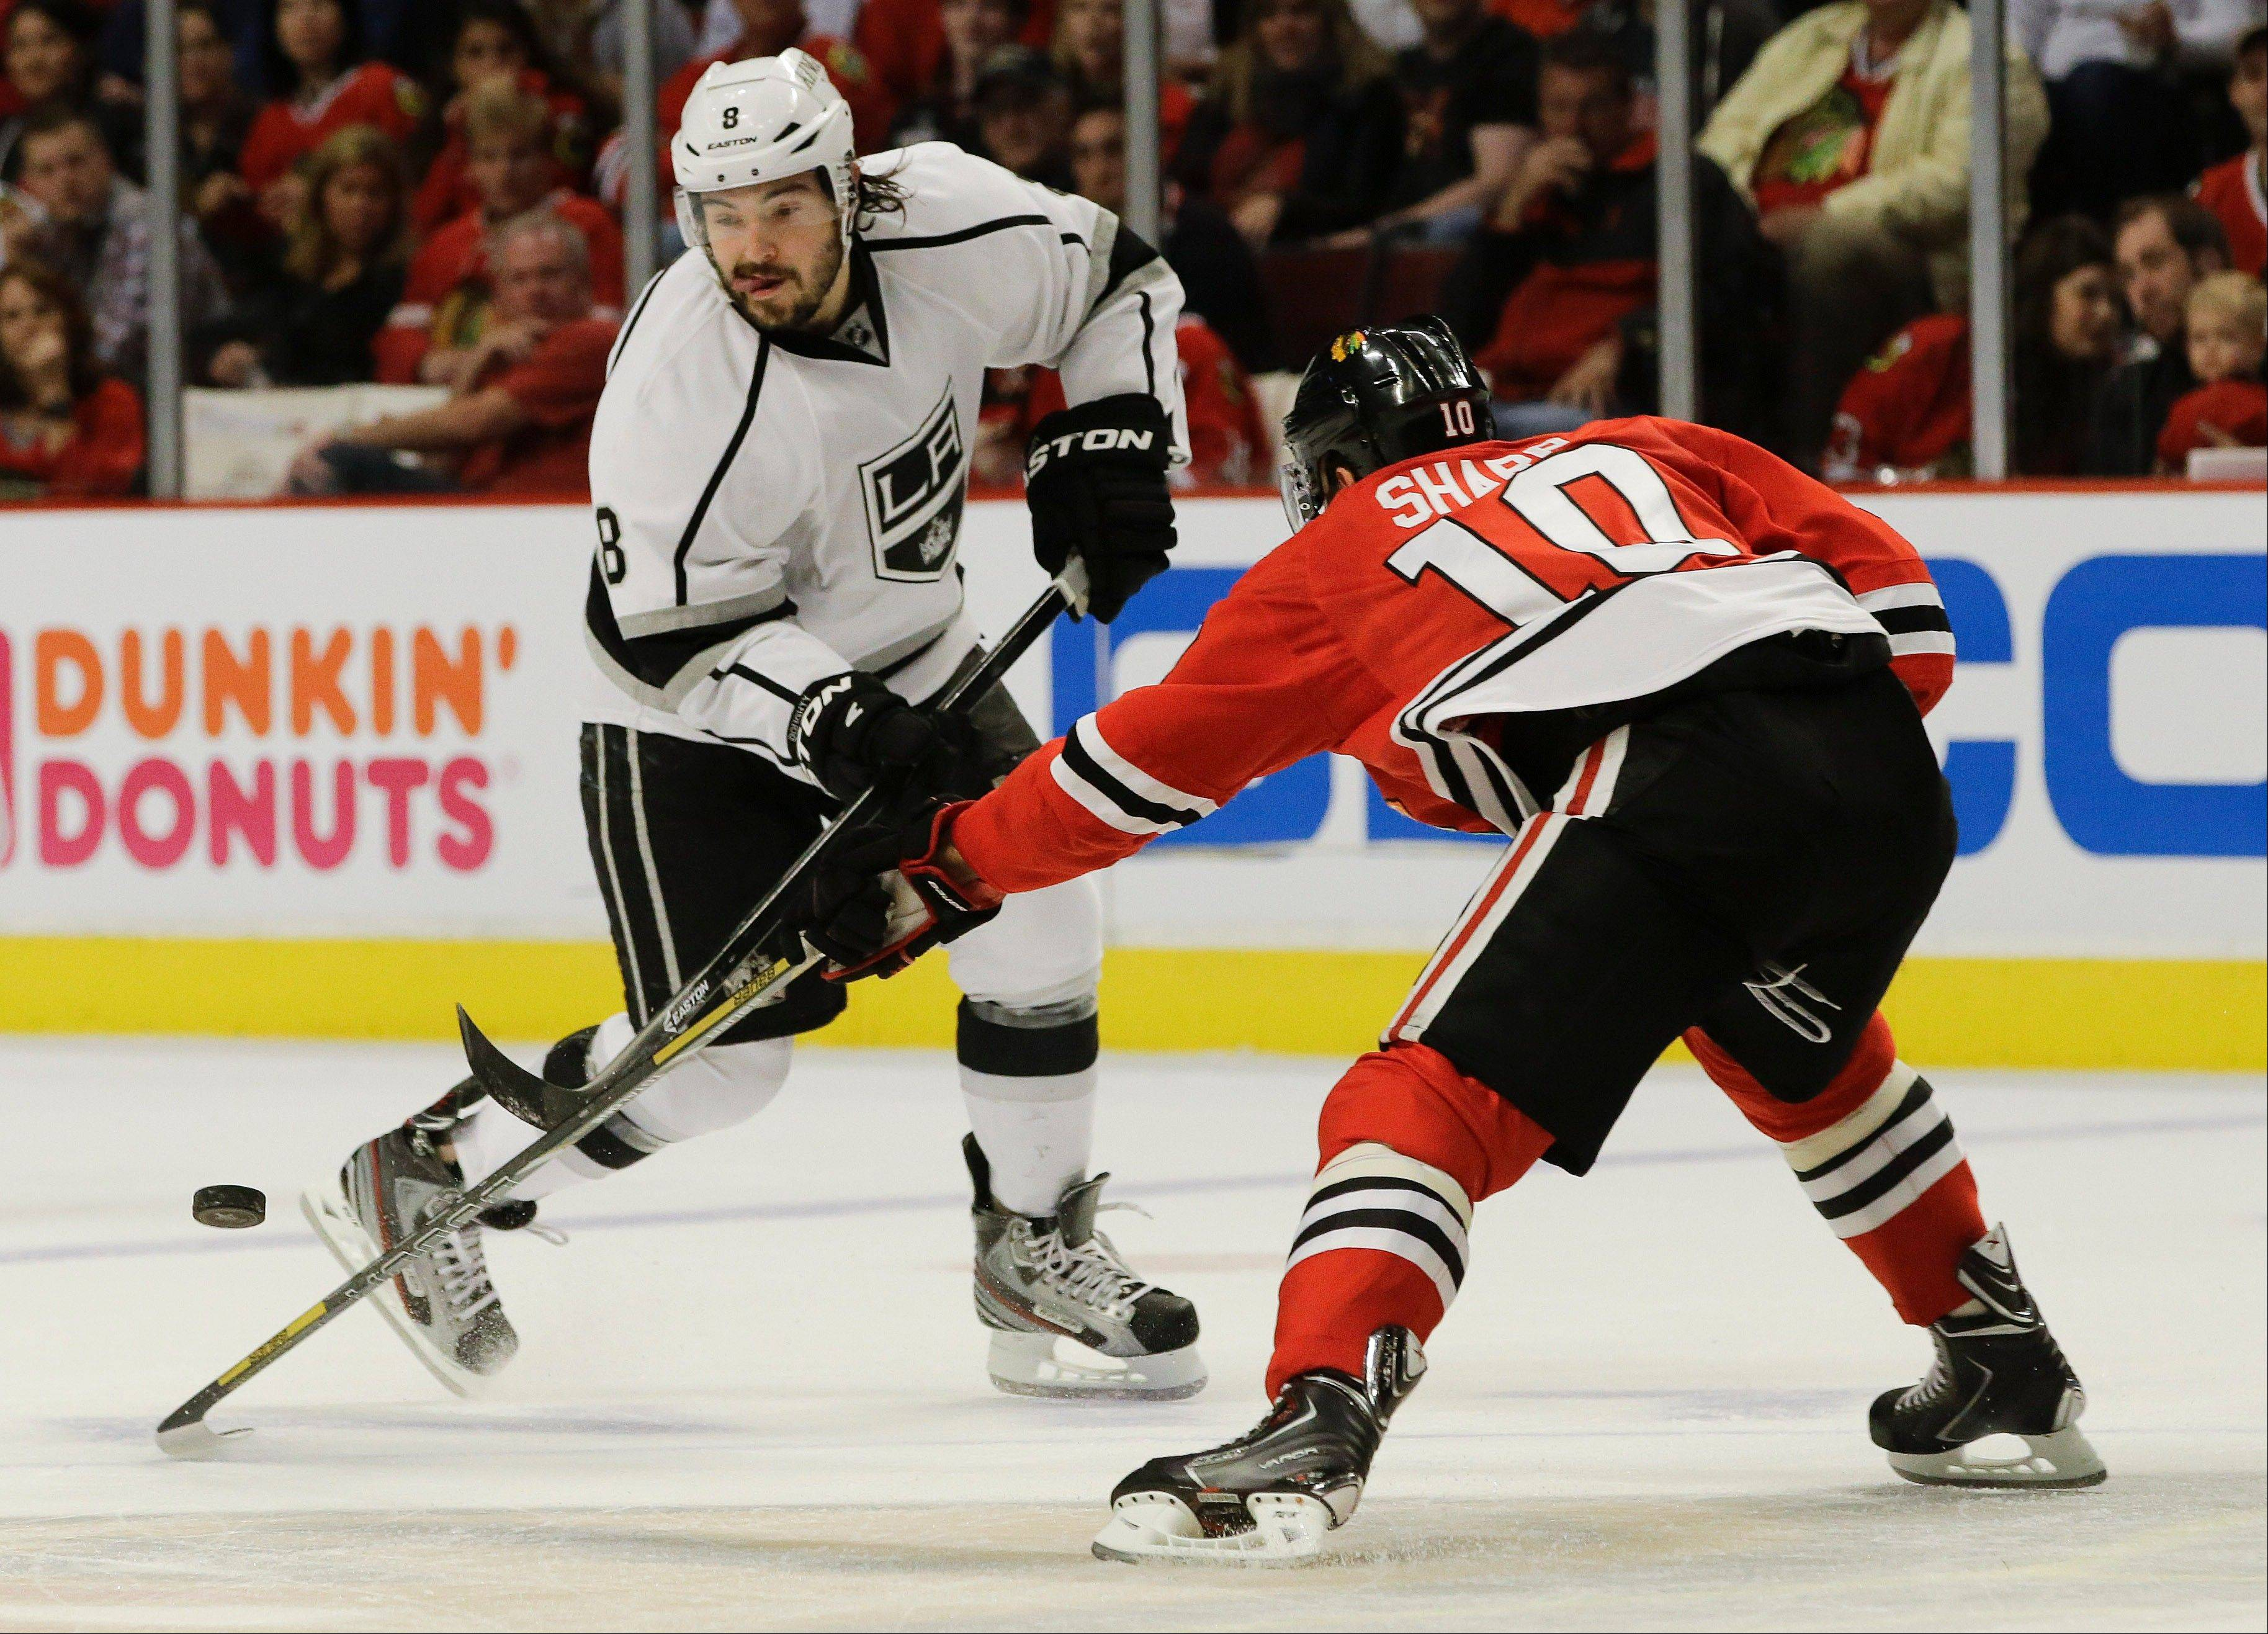 Los Angeles Kings defenseman Drew Doughty (8) battles for the puck against Chicago Blackhawks center Patrick Sharp (10) during the first period of Game 2 of the NHL hockey Stanley Cup Western Conference finals, Sunday, June 2, 2013, in Chicago.